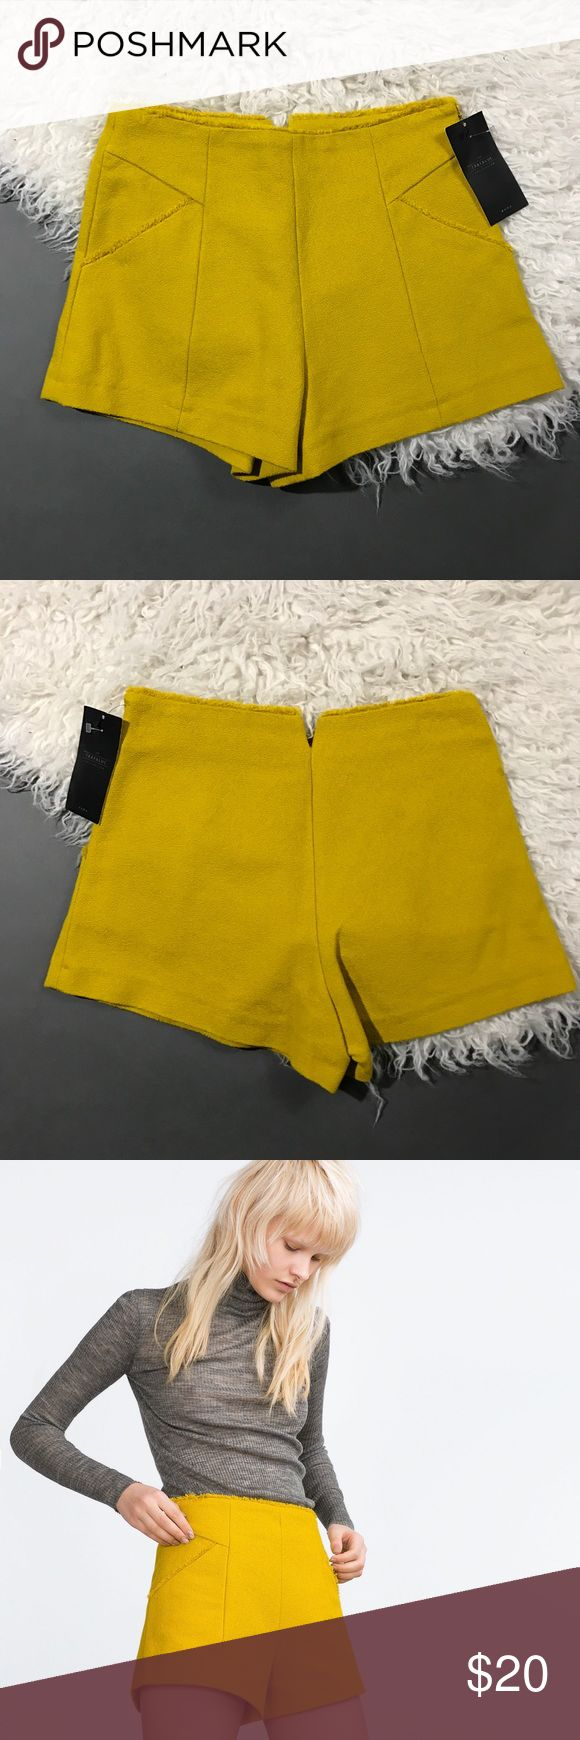 ZARA Woman Yellow Hotpants Short Shorts Size- Small New with tags. Zara Shorts